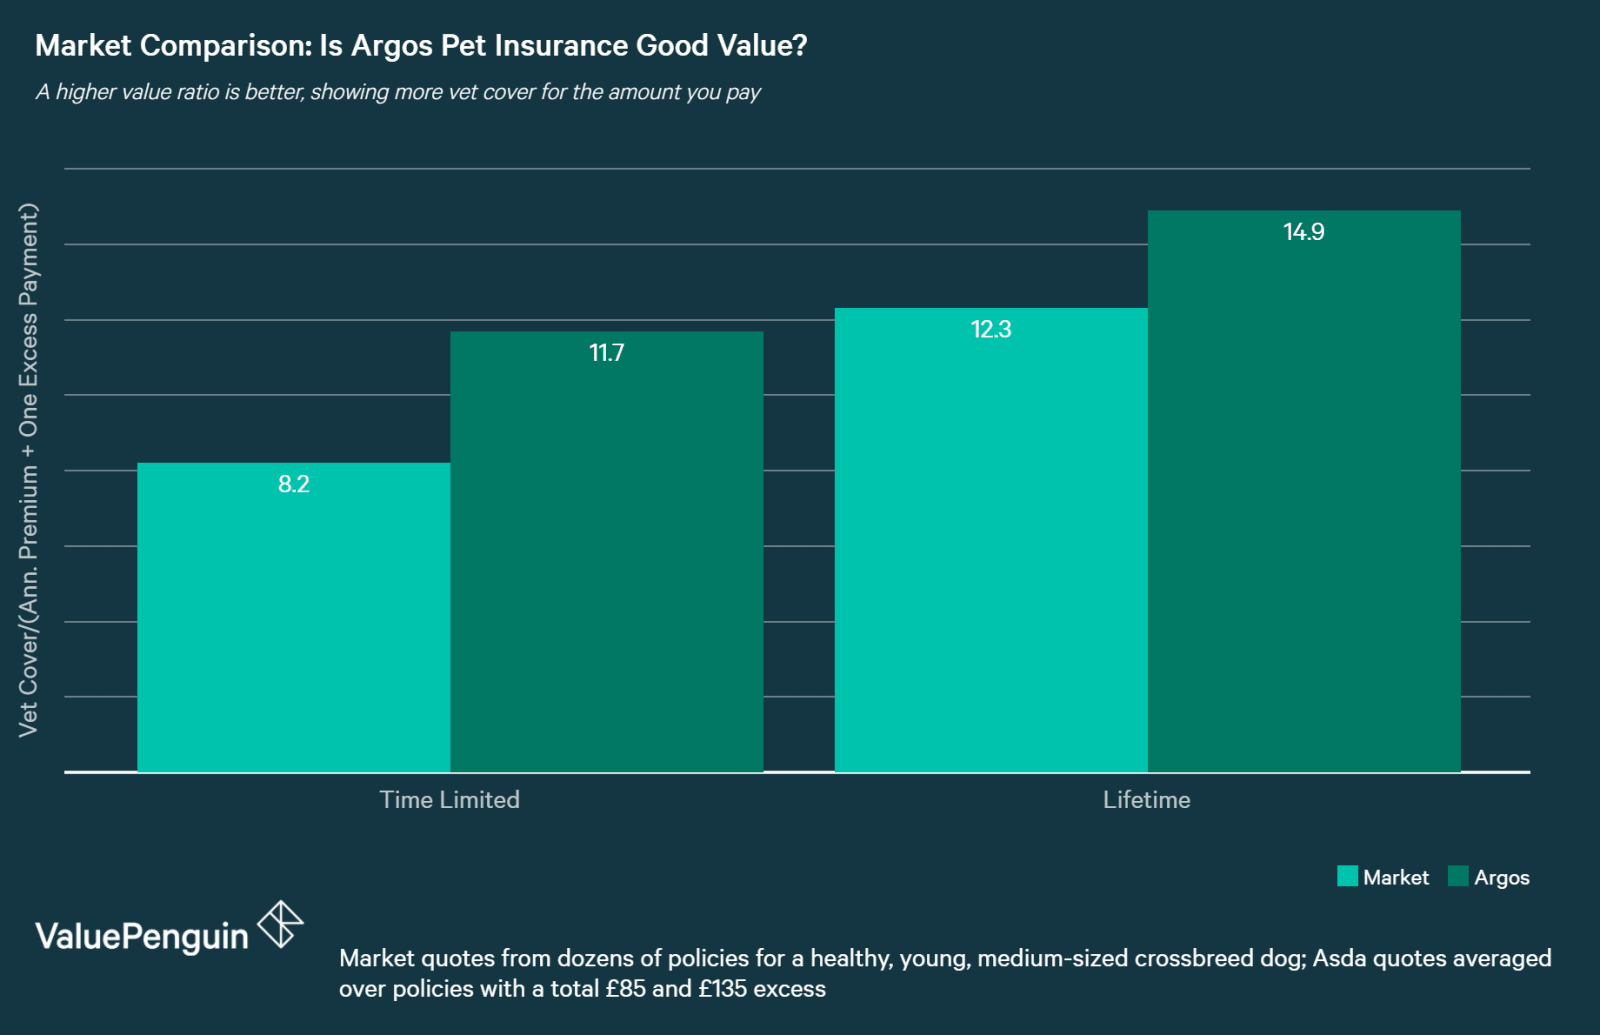 chart comparing pet insurance quotes by policy type for Argos vs the market average